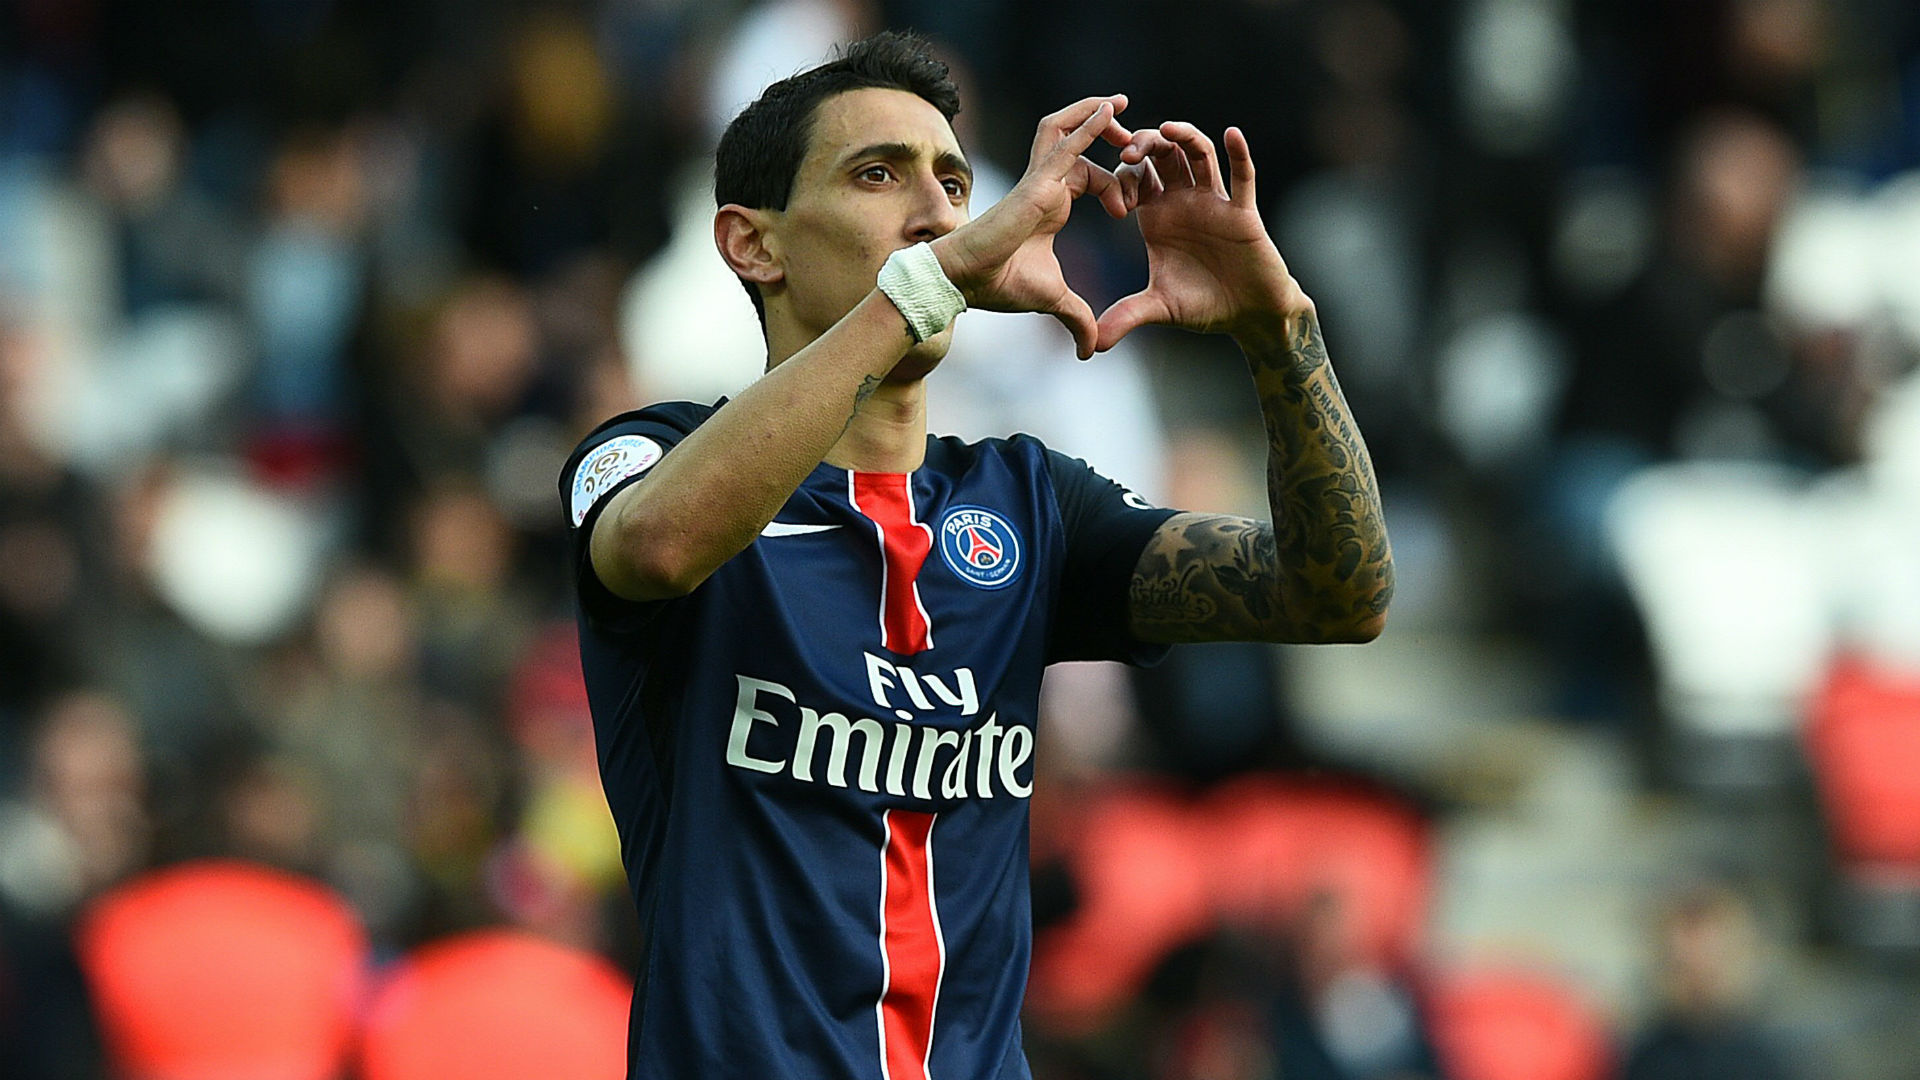 Angel Di Maria Paris SG Caen Ligue 1 16042016